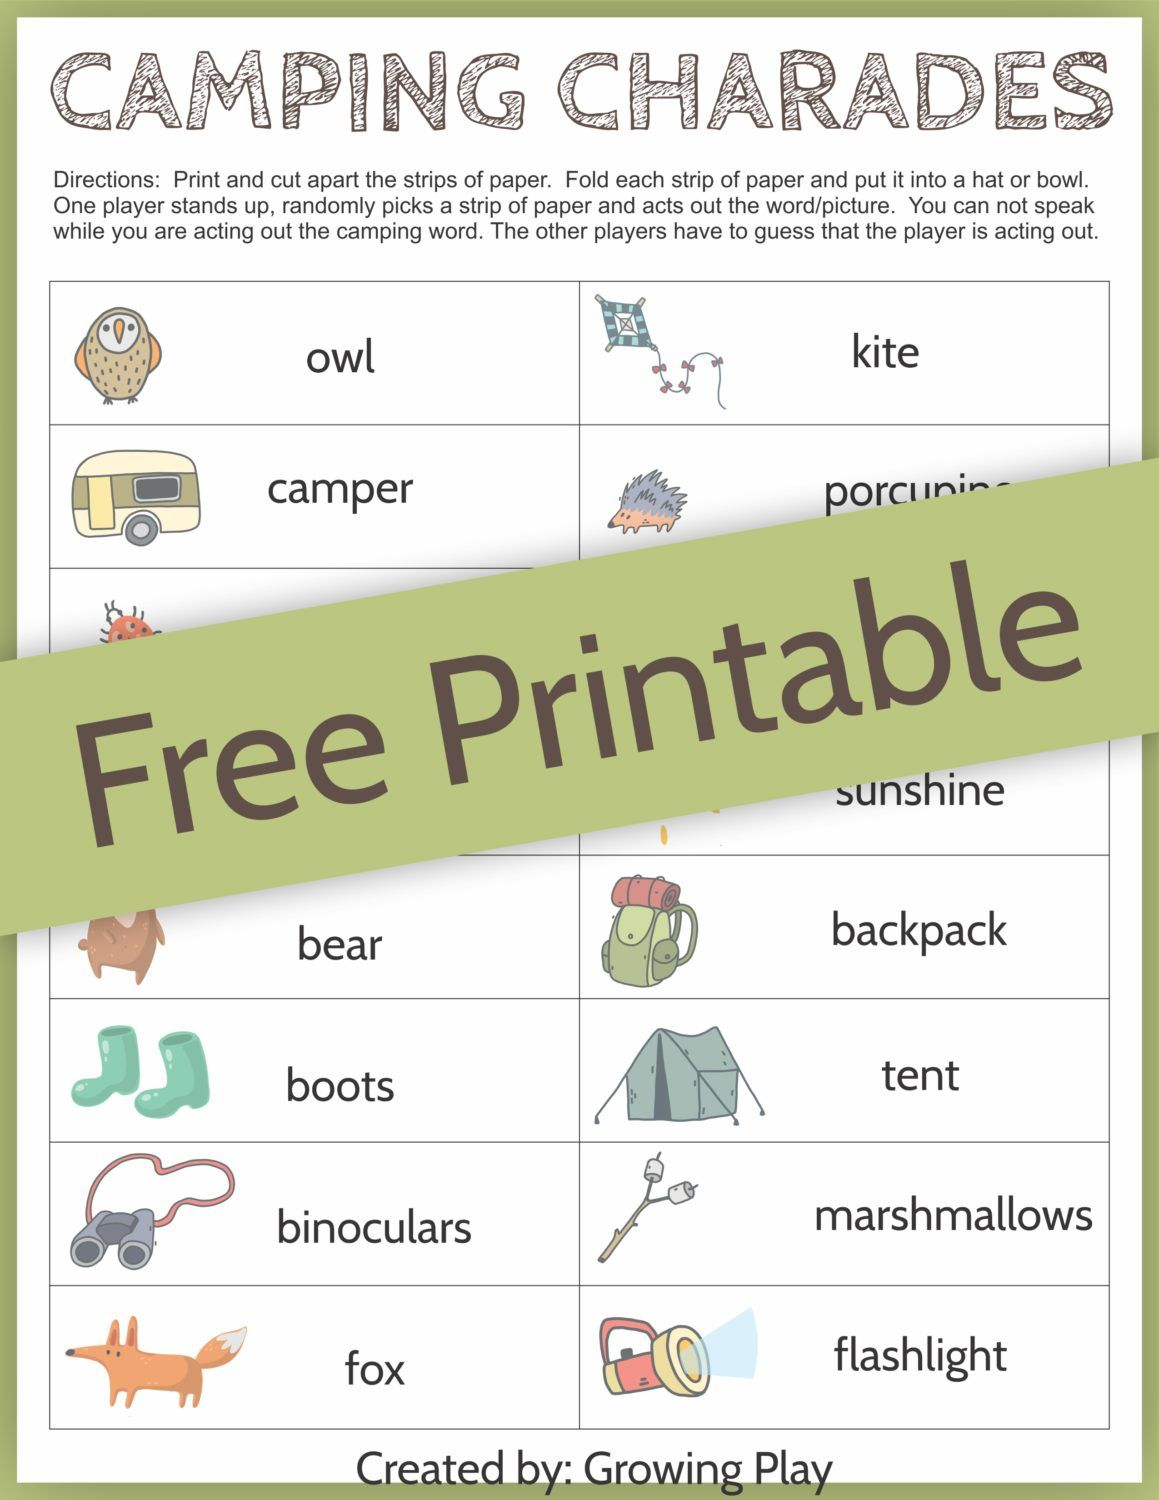 Camping Charades Game For Kids - Free Printable | Camping | Games - Free Printable Camping Games